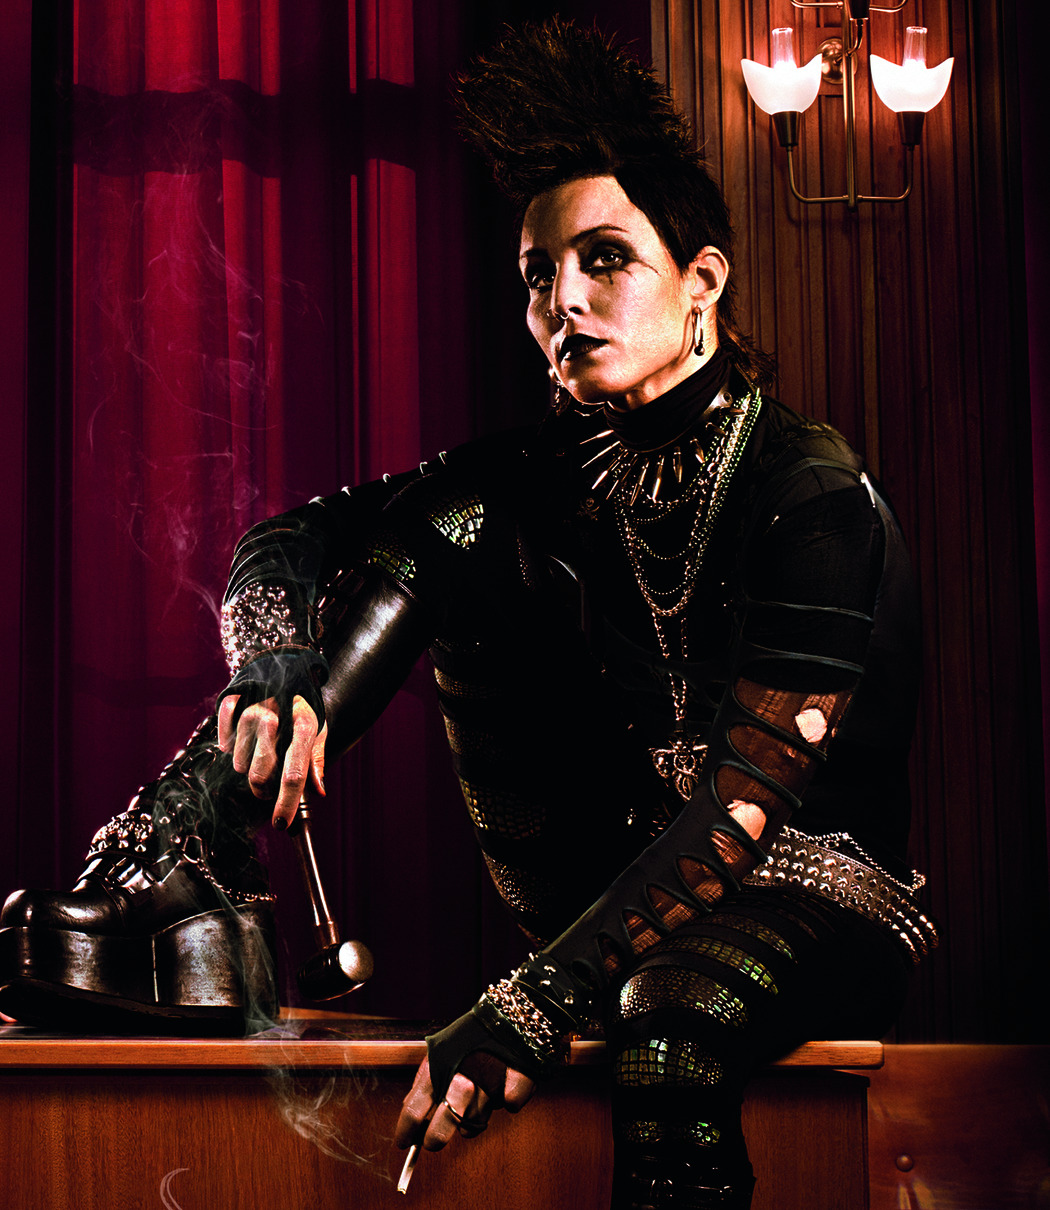 Noomi Rapace as Lisbeth Salander in The Girl Who Kicked The Hornet's Nest